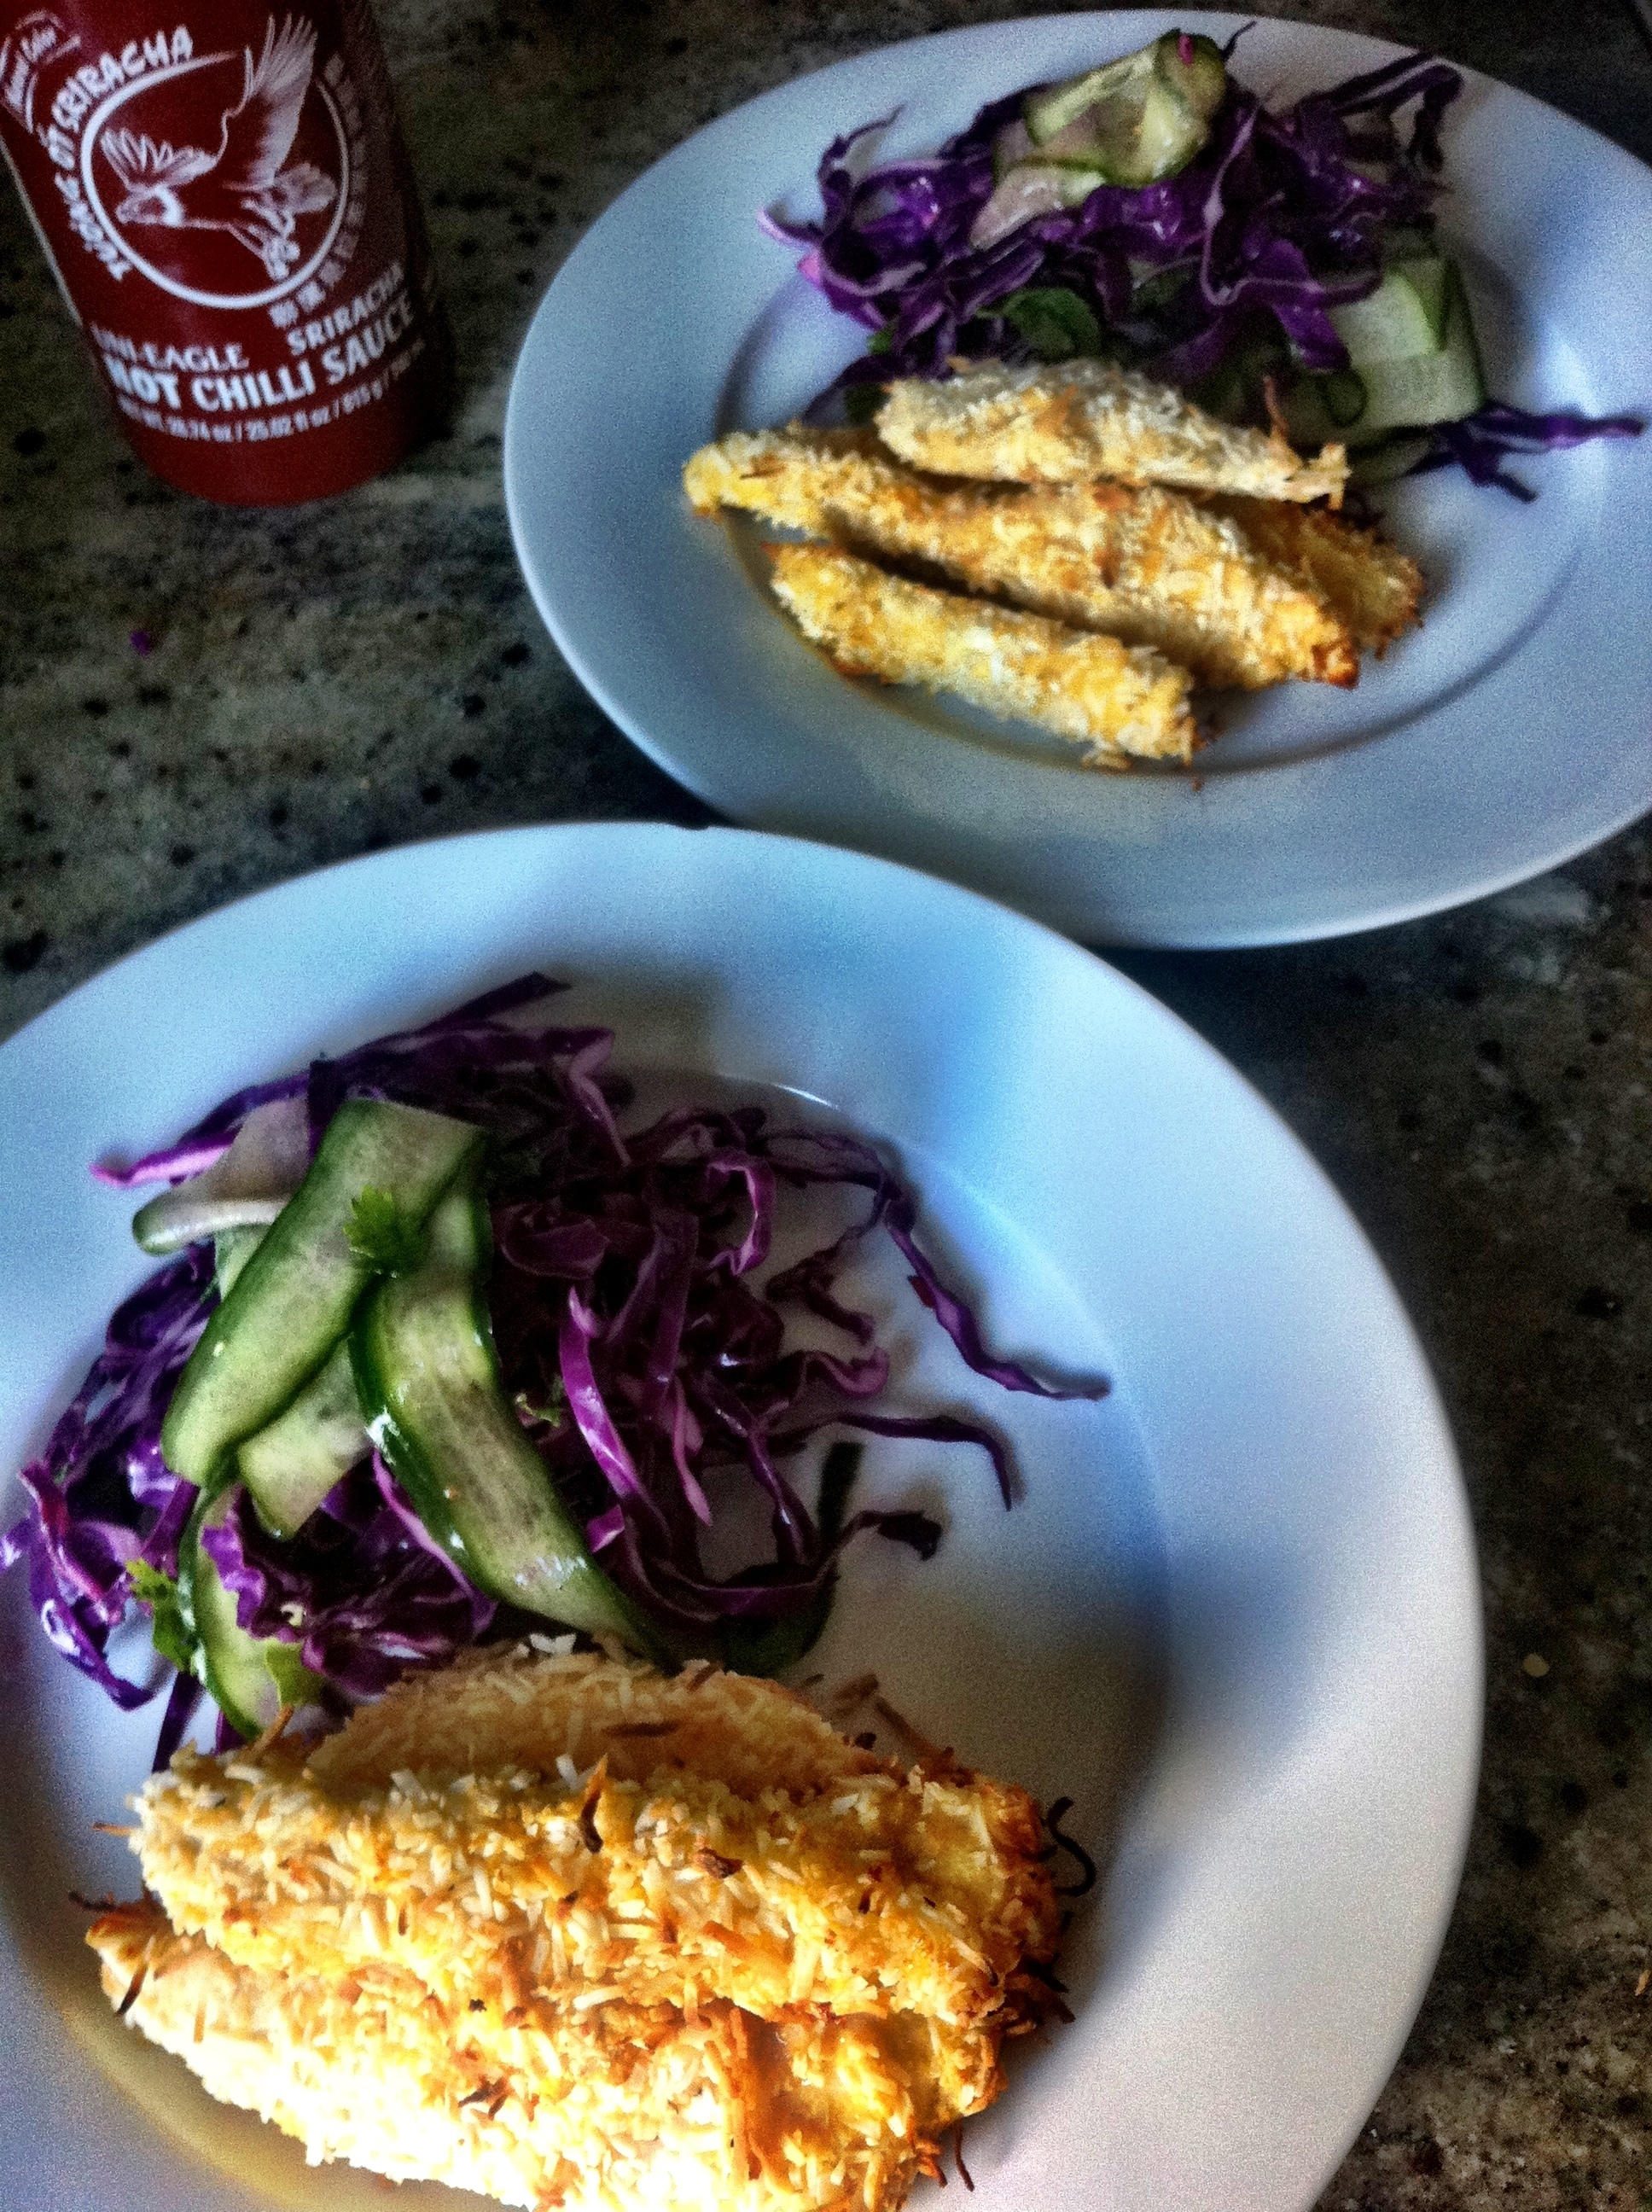 Coconut crusted chicken breasts